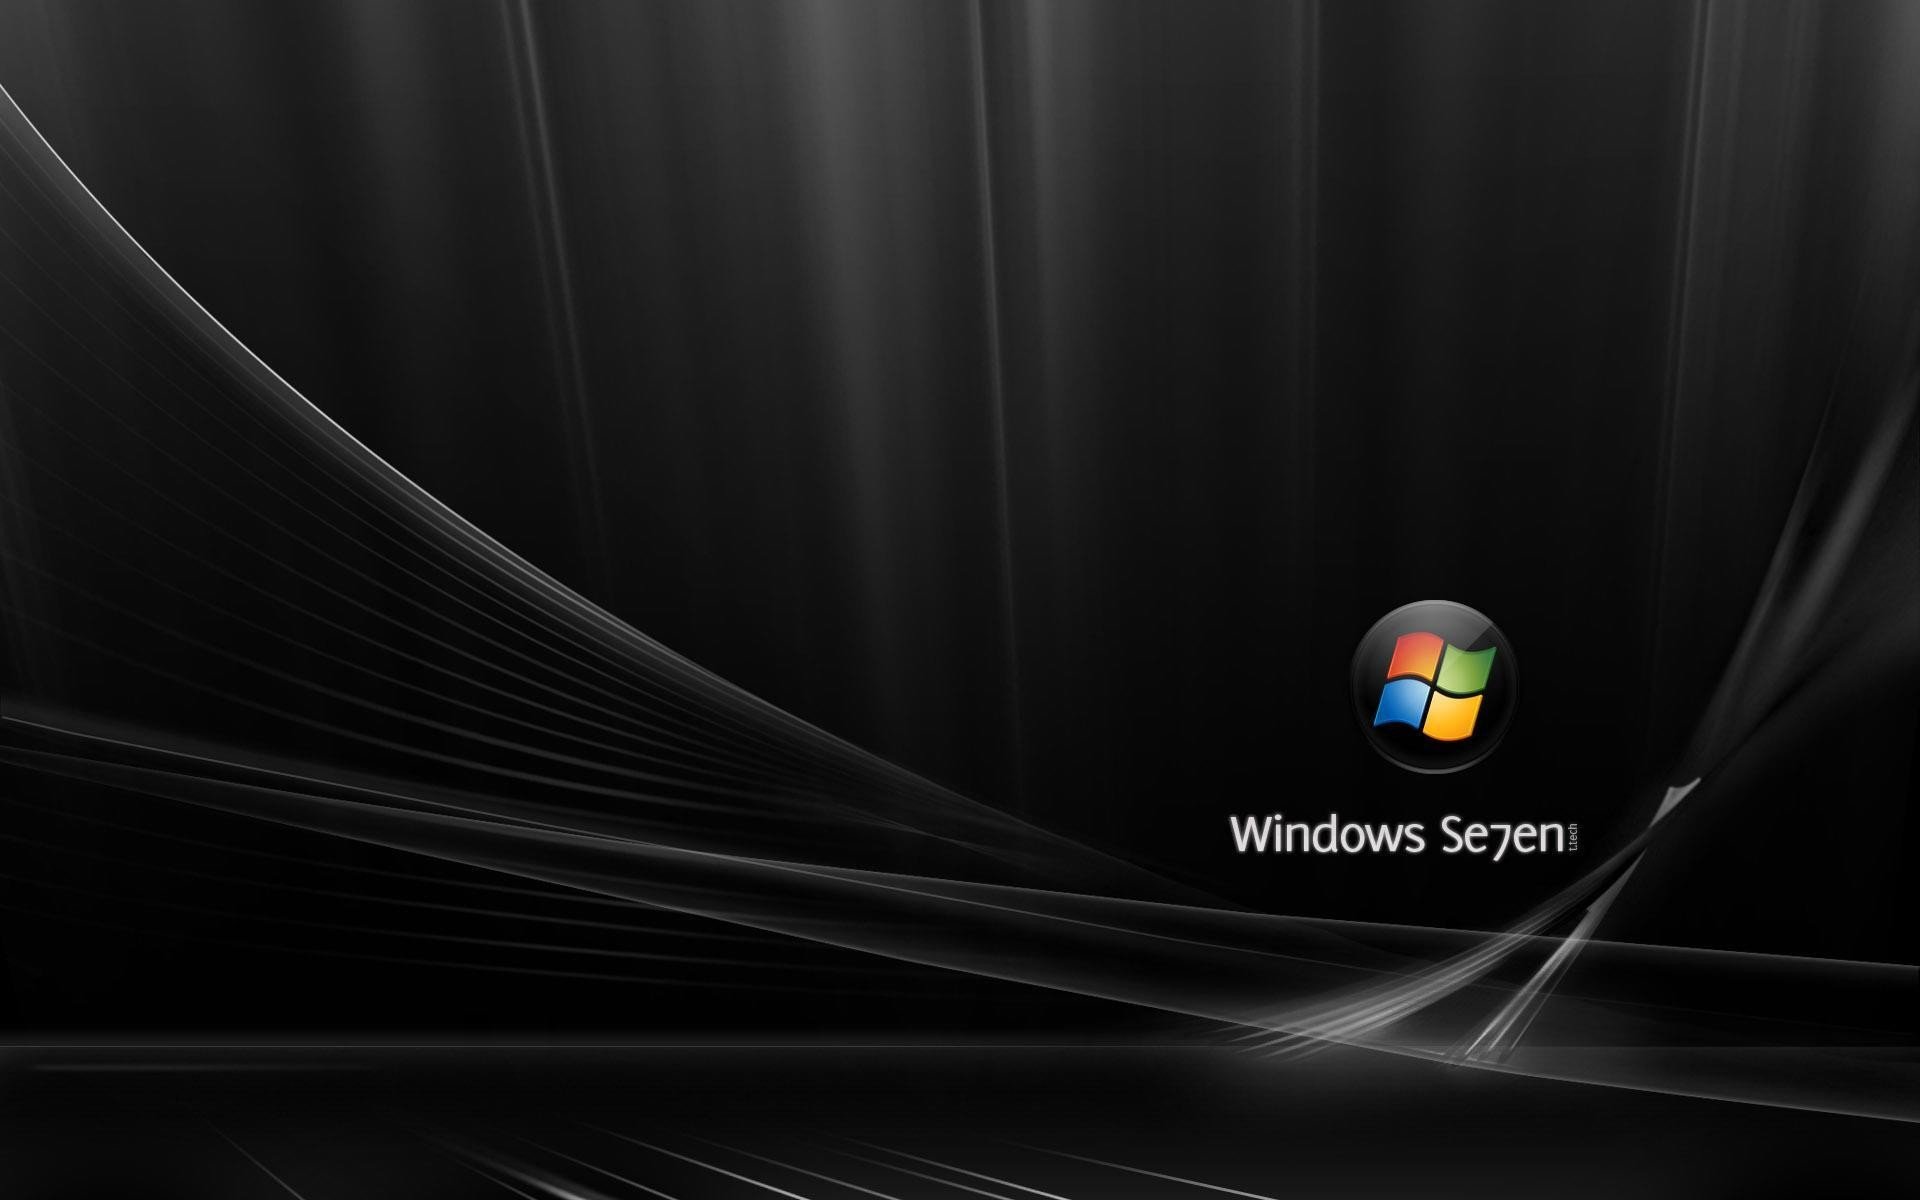 1920x1200 Windows Ultimate Wallpaper Hd 1920×1080 Windows 7 Professional Wallpapers HD  (46 Wallpapers)